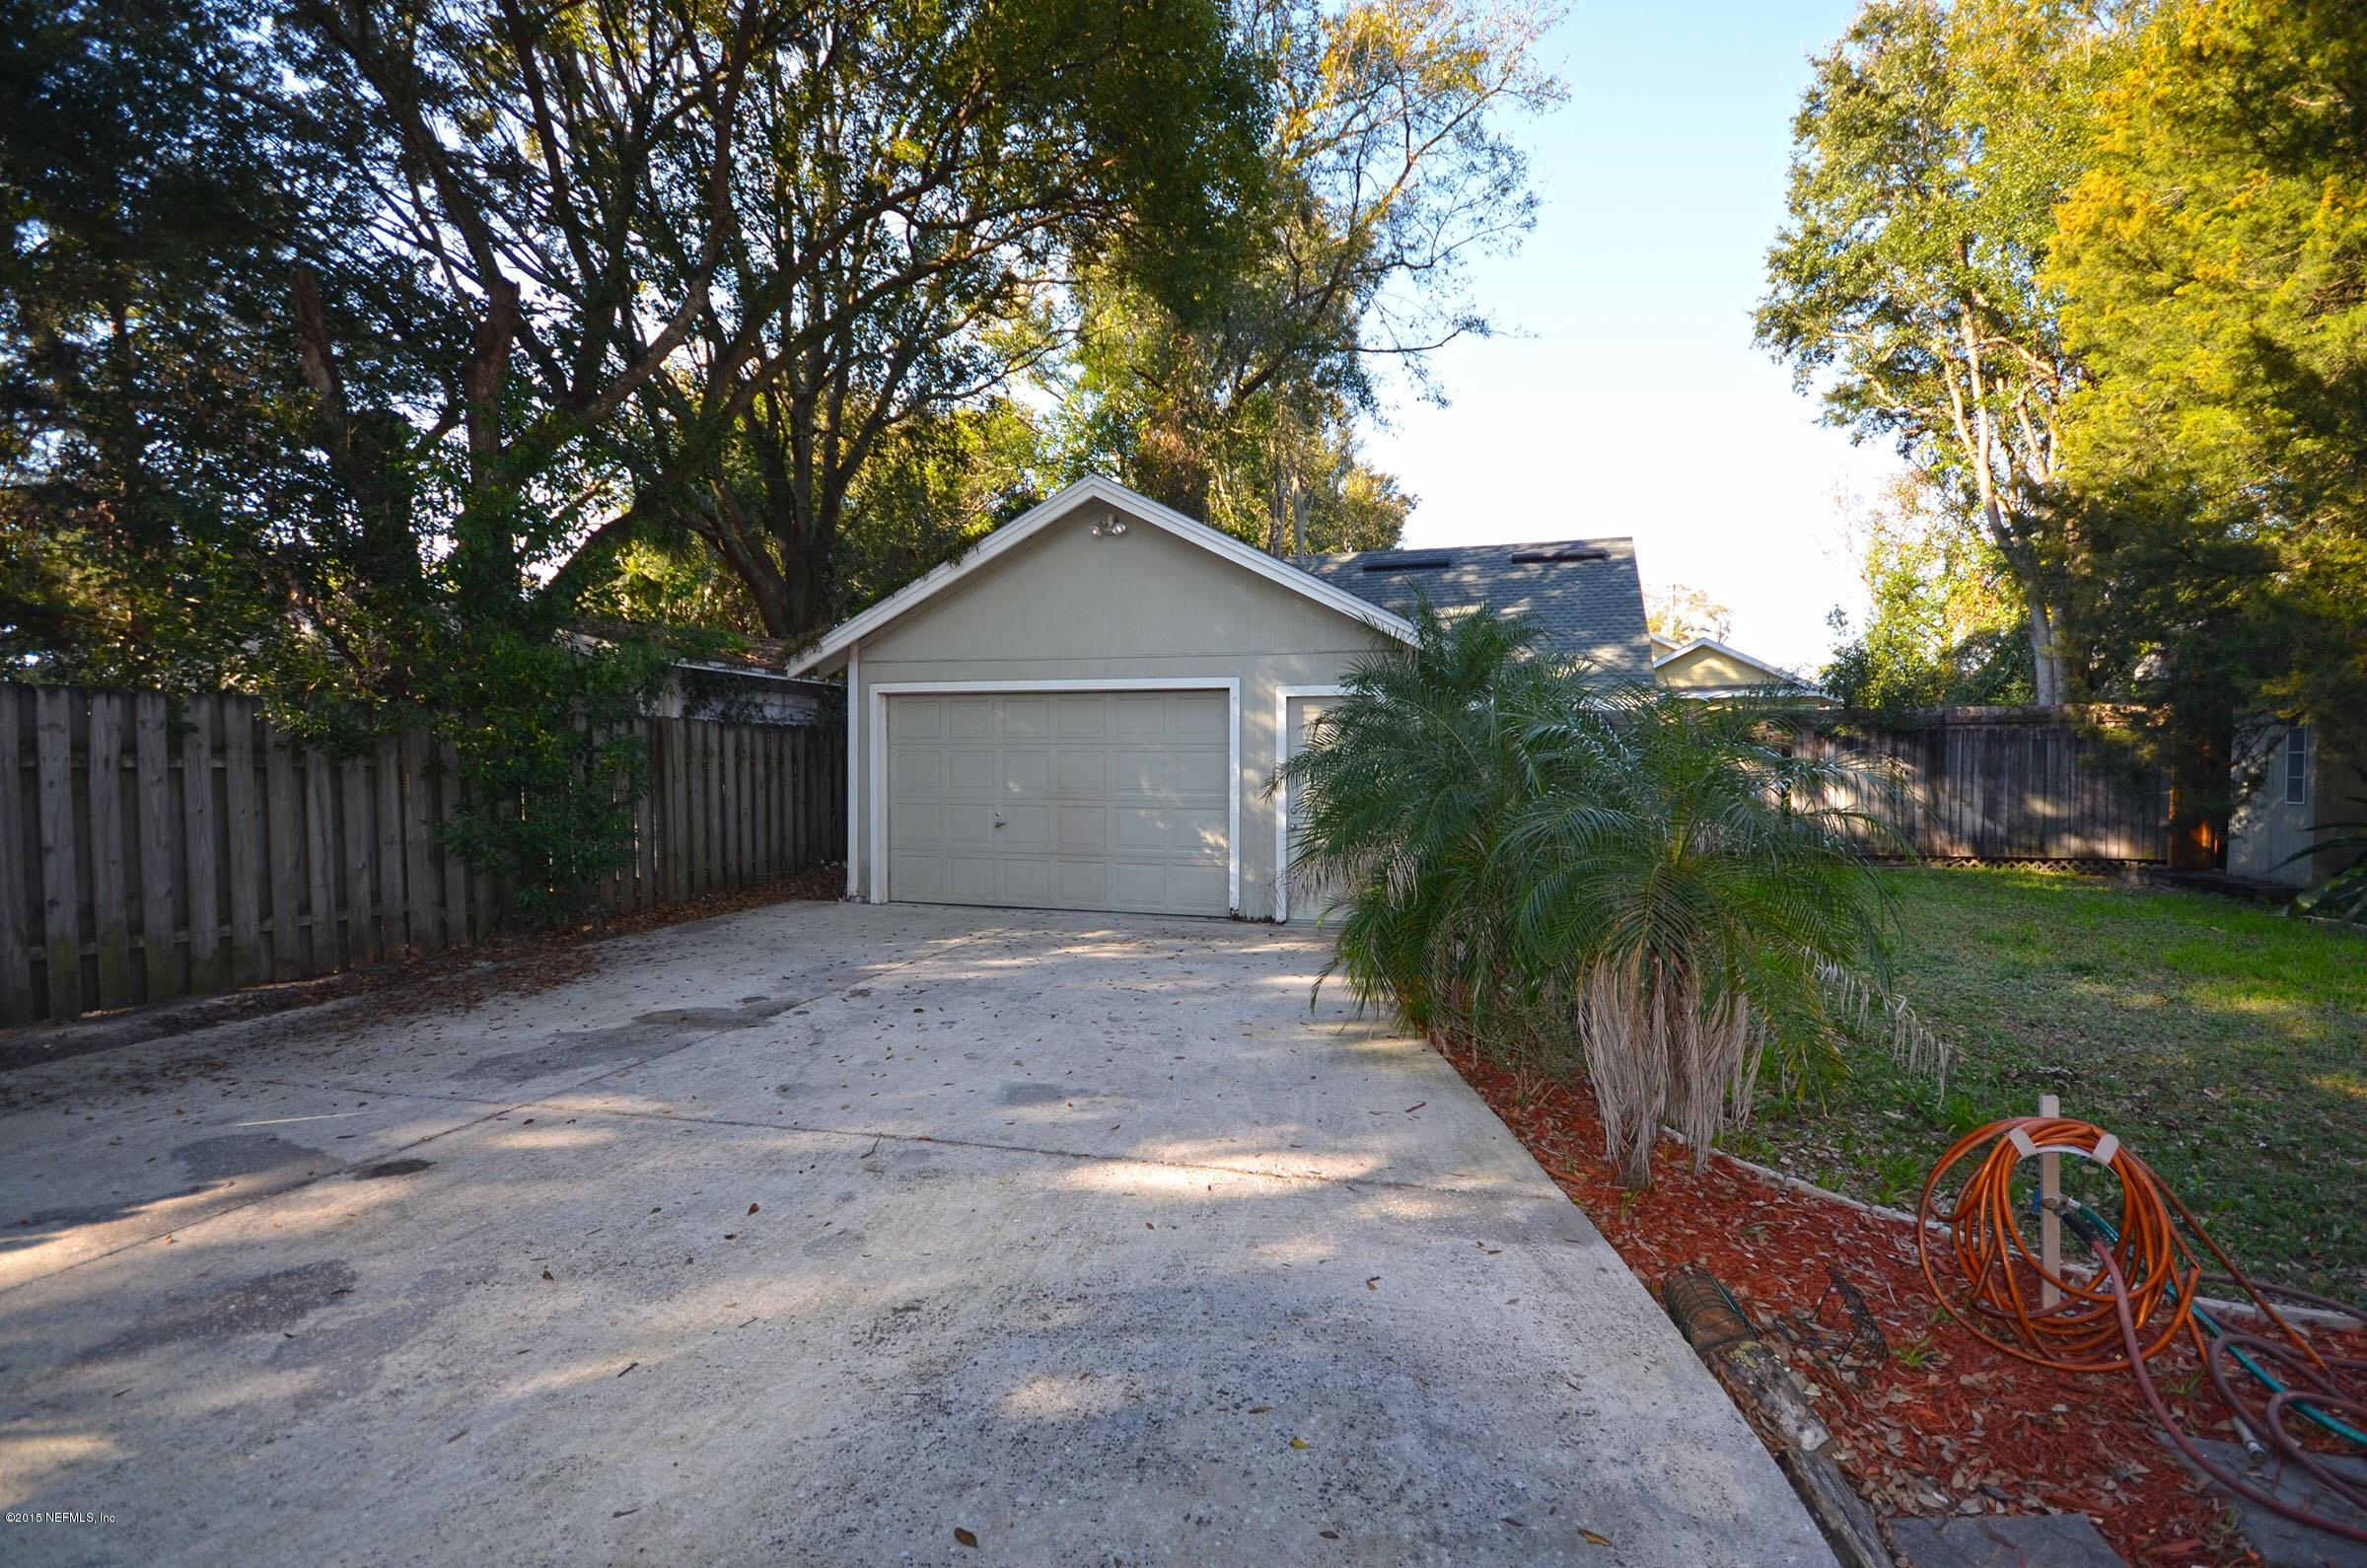 4417 SAN JUAN, JACKSONVILLE, FLORIDA 32210, 3 Bedrooms Bedrooms, ,1 BathroomBathrooms,Residential - single family,For sale,SAN JUAN,952619